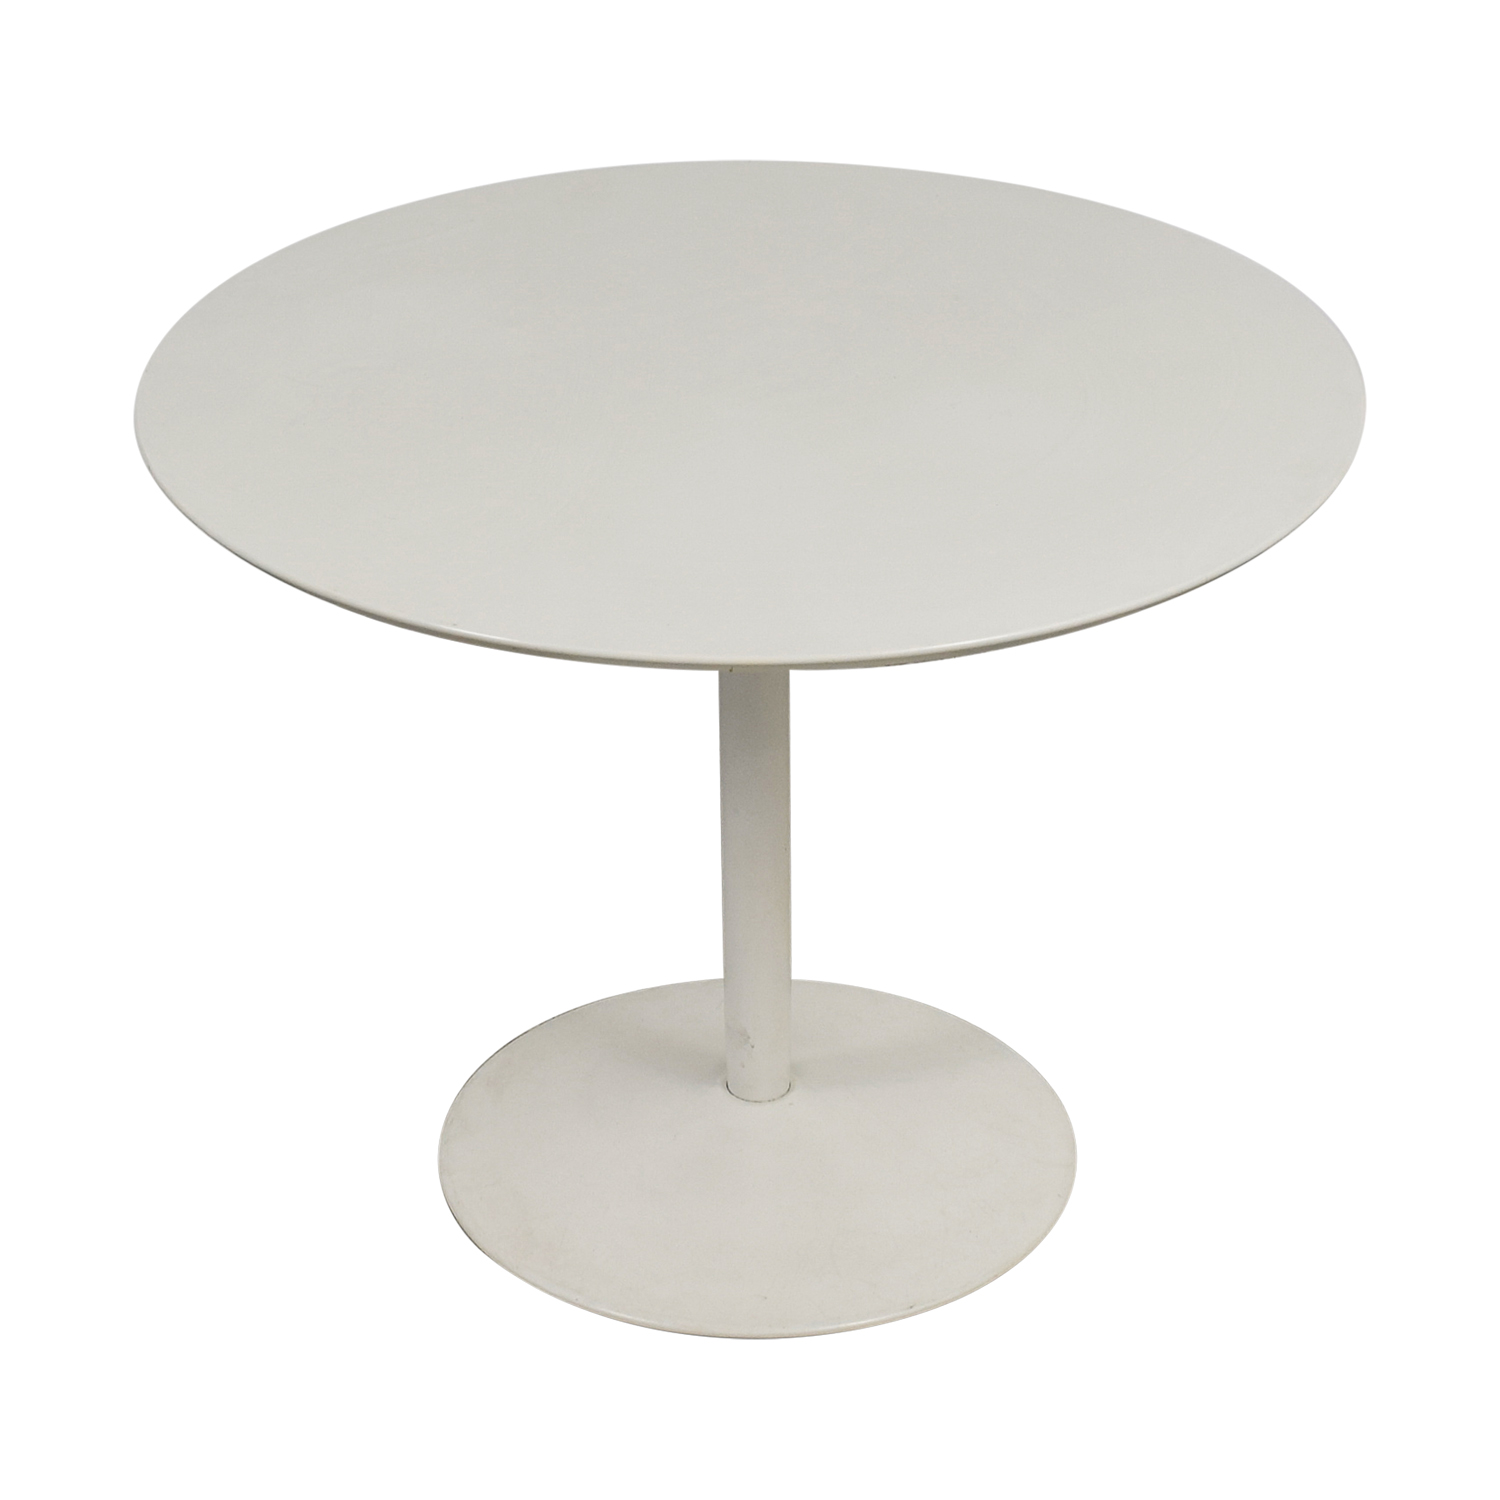 CB2 CB2 42 Pedestal Table dimensions